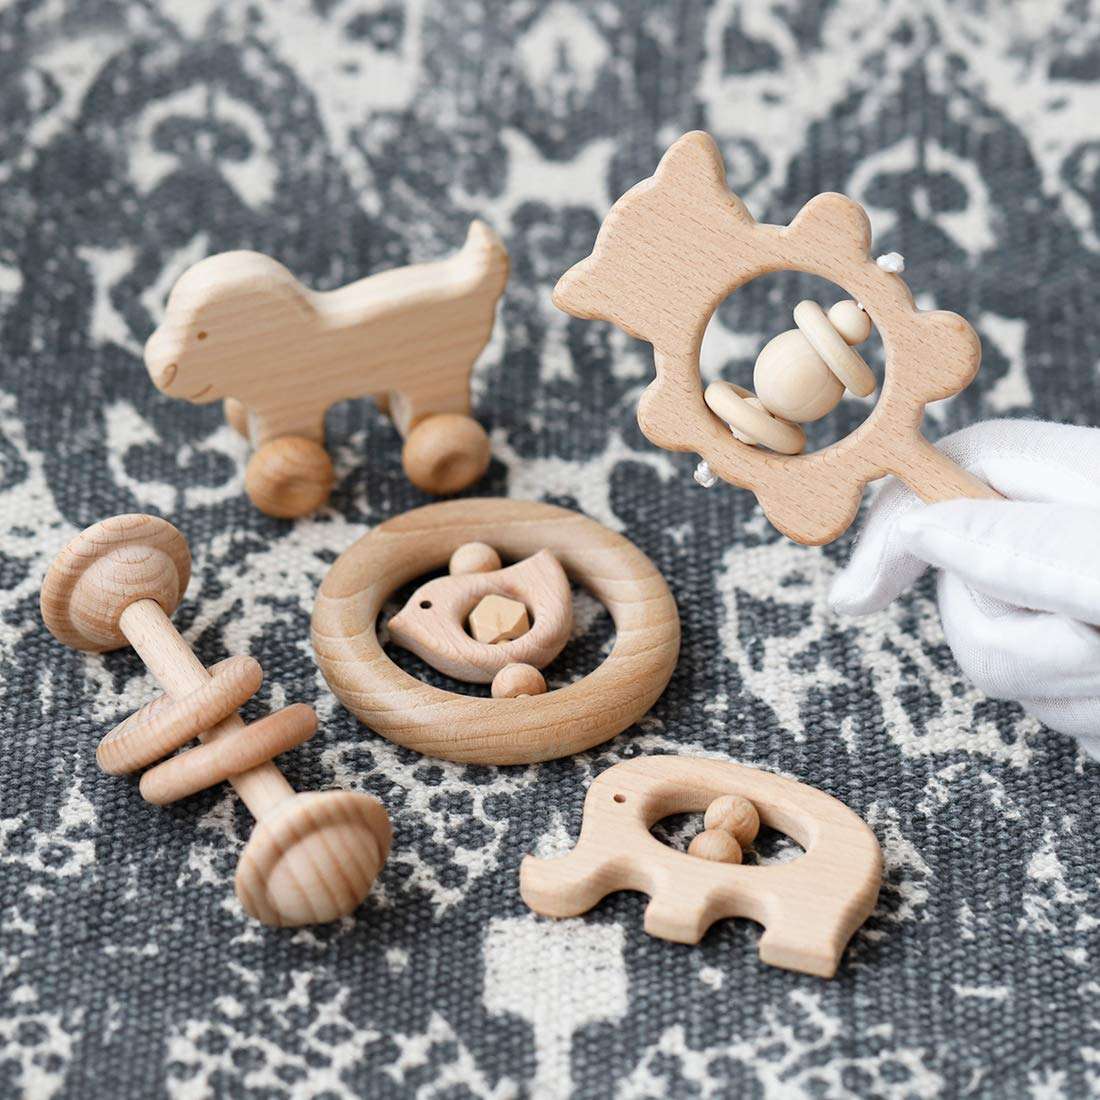 Wooden Baby Rattles Montessori Toys Skwish Wood Teether Organic Beech Teething Ring Nursing New Baby Gift of 5pc Set by Promise Babe (Image #1)